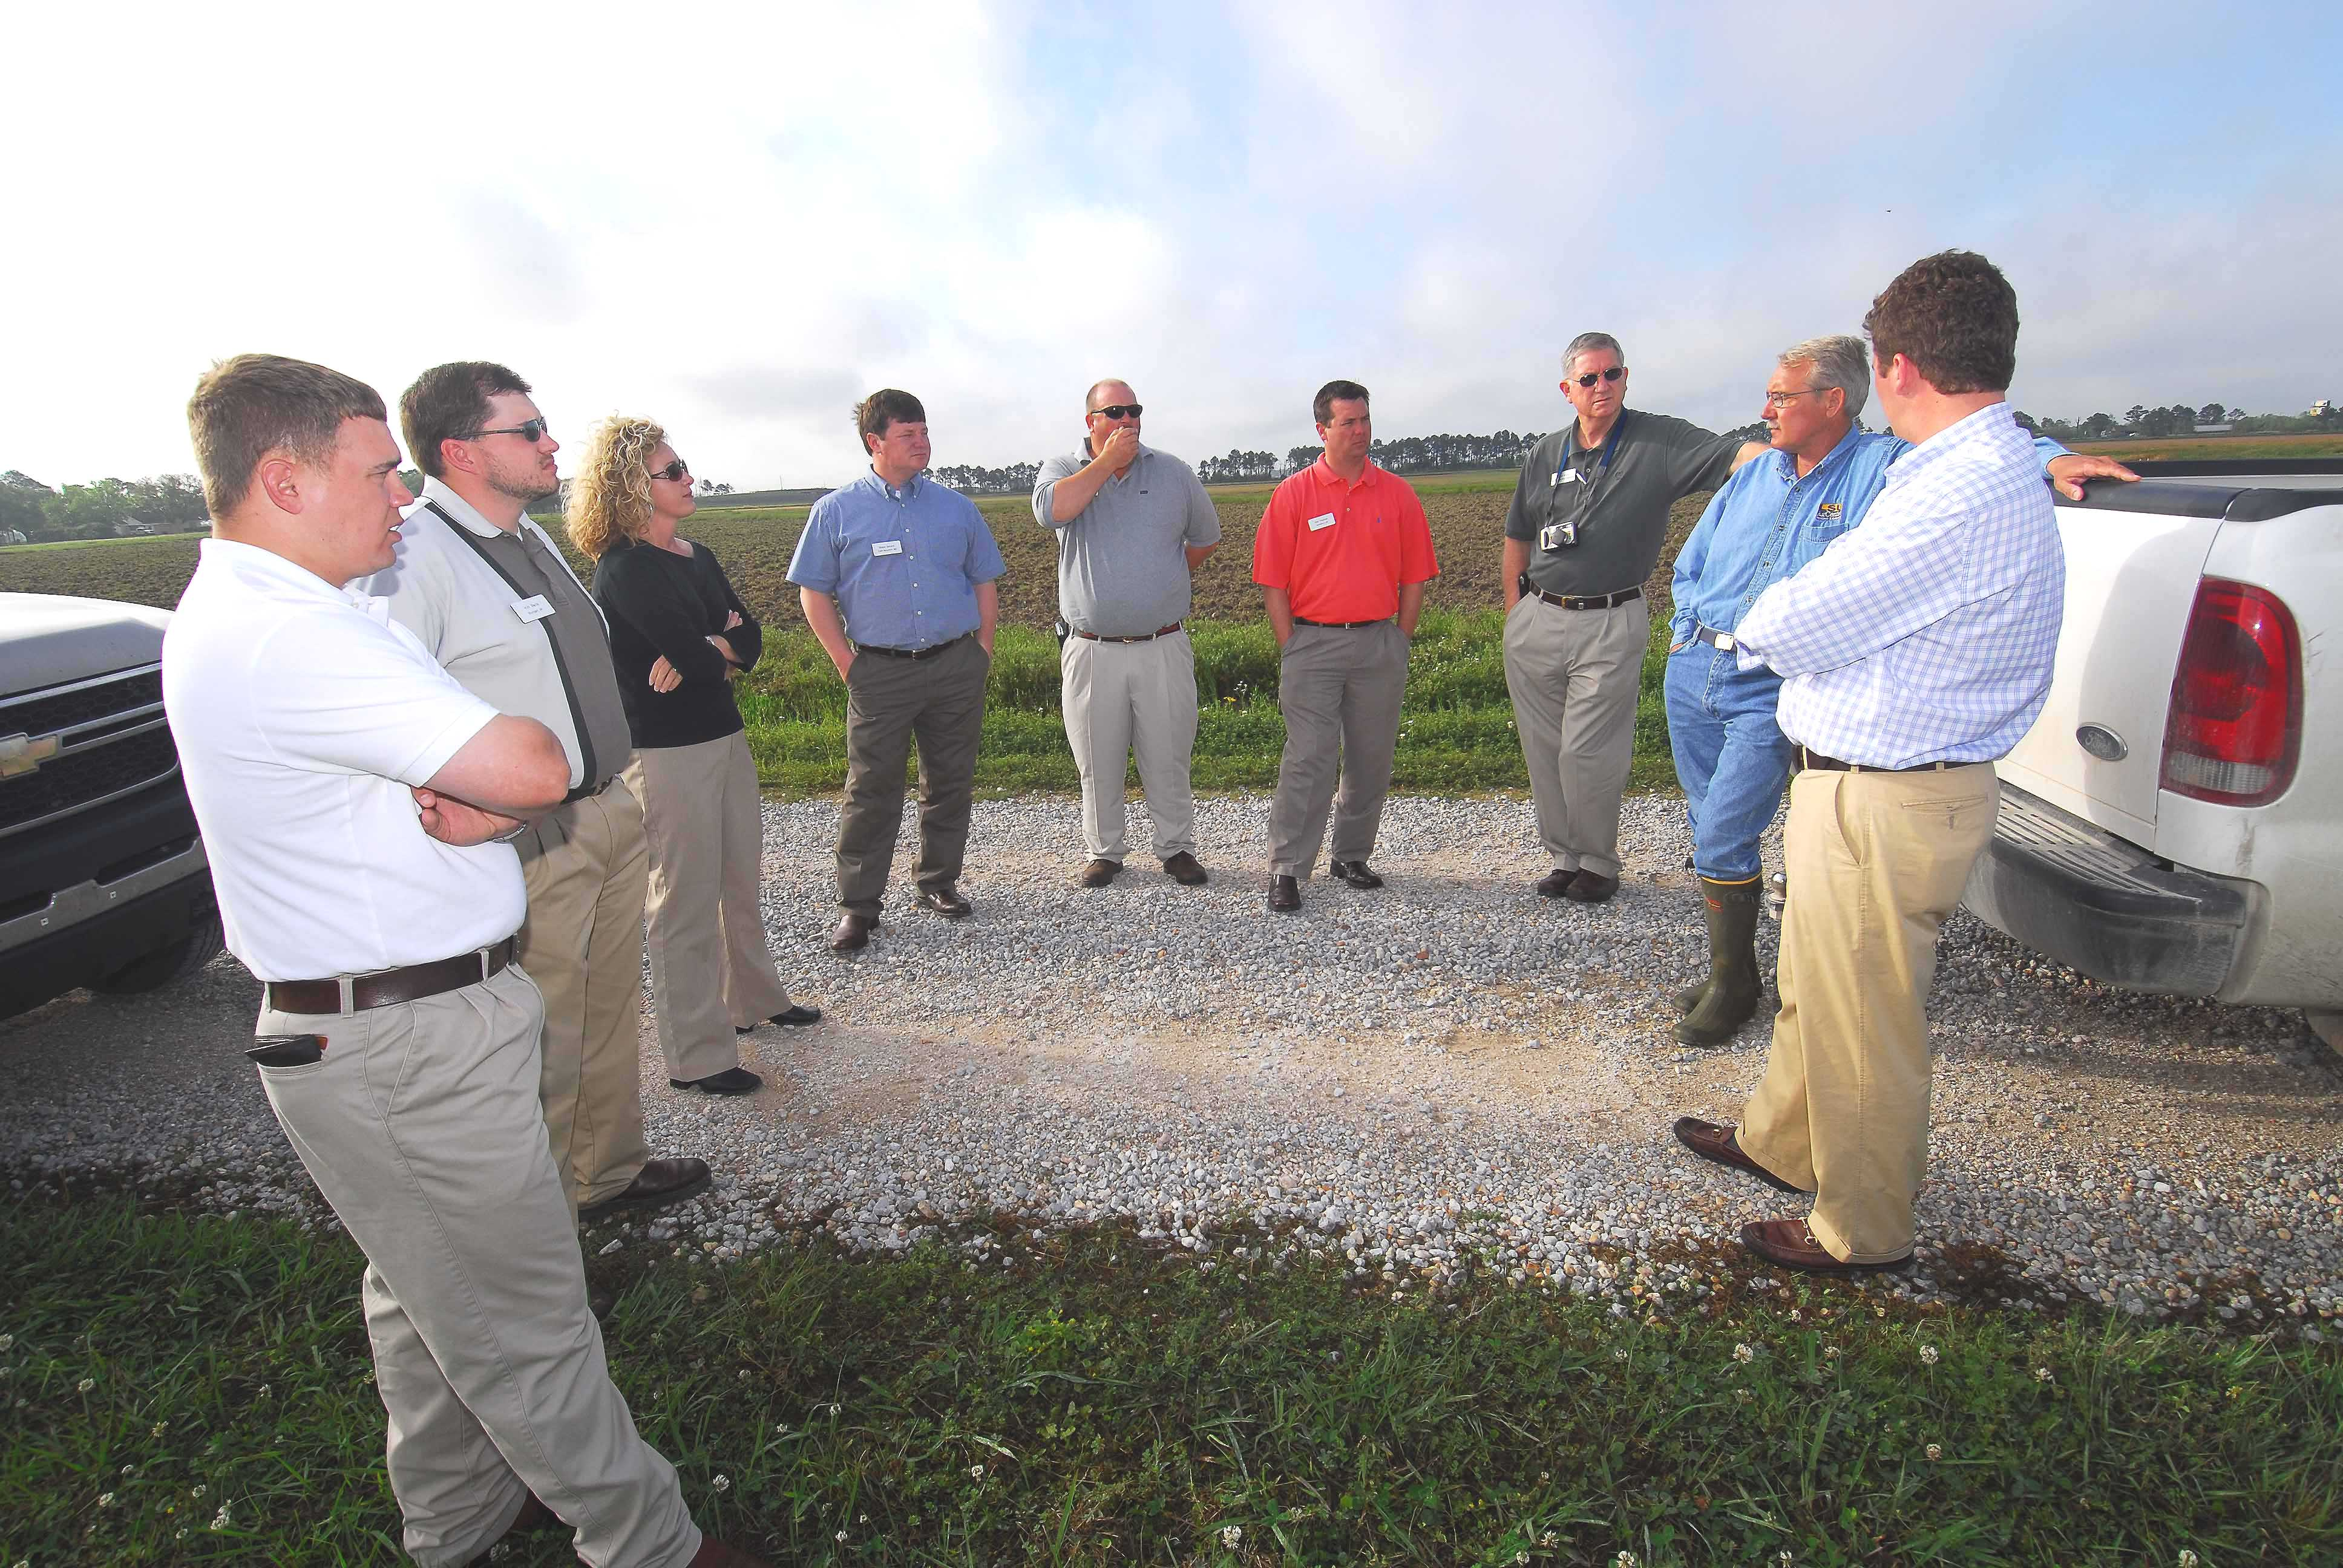 USA Rice leadership class tours LSU AgCenter Rice Research Station